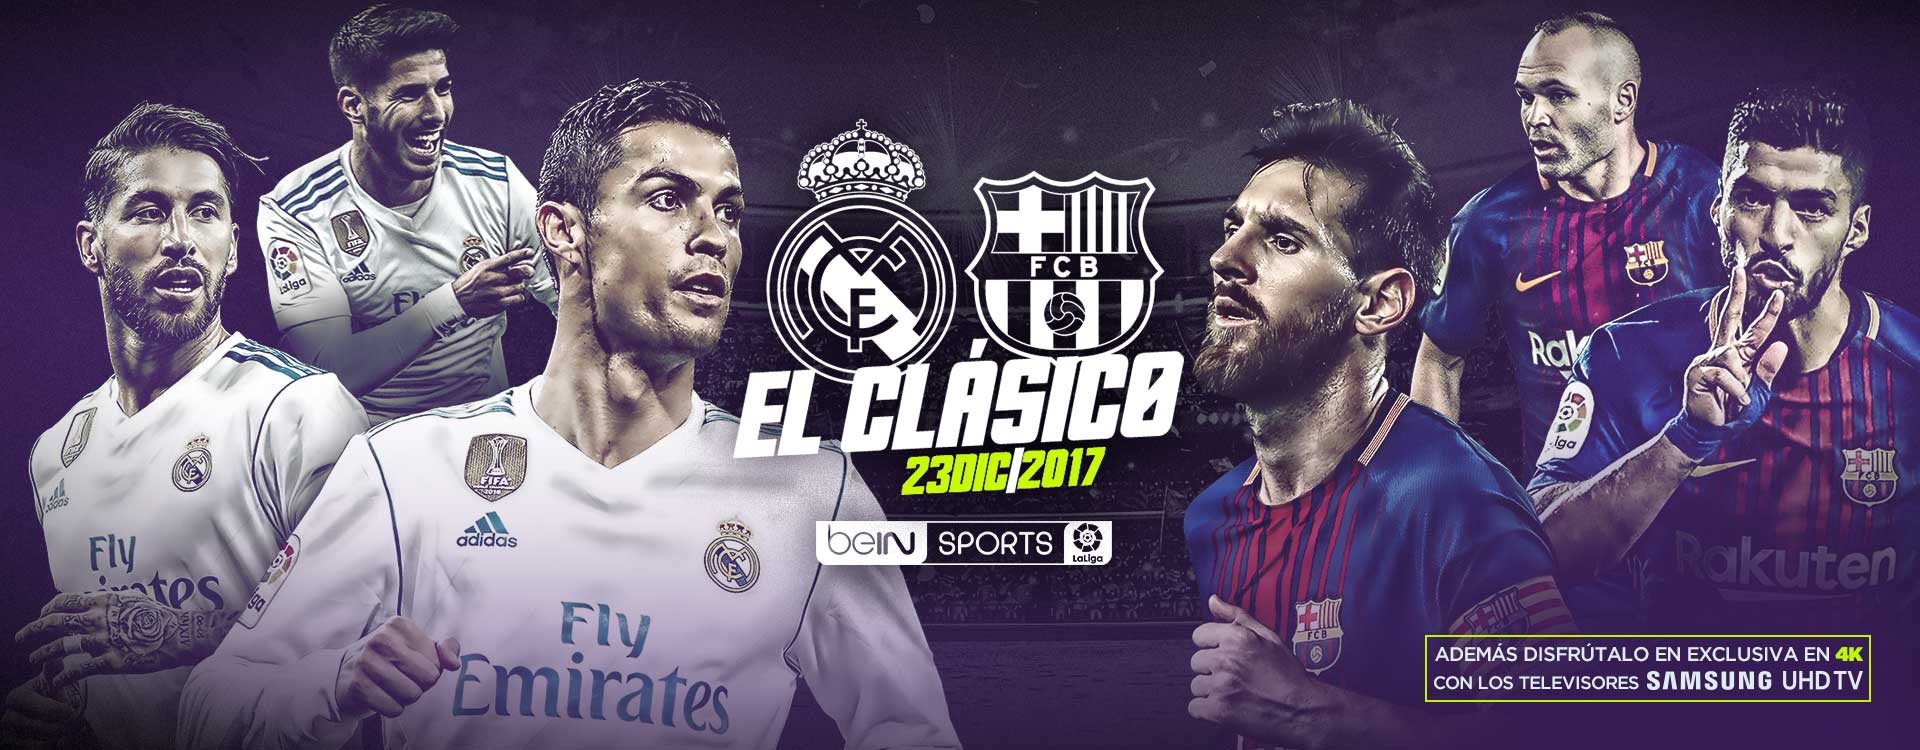 Clásico Real Madrid Barcelona en beIN Sports